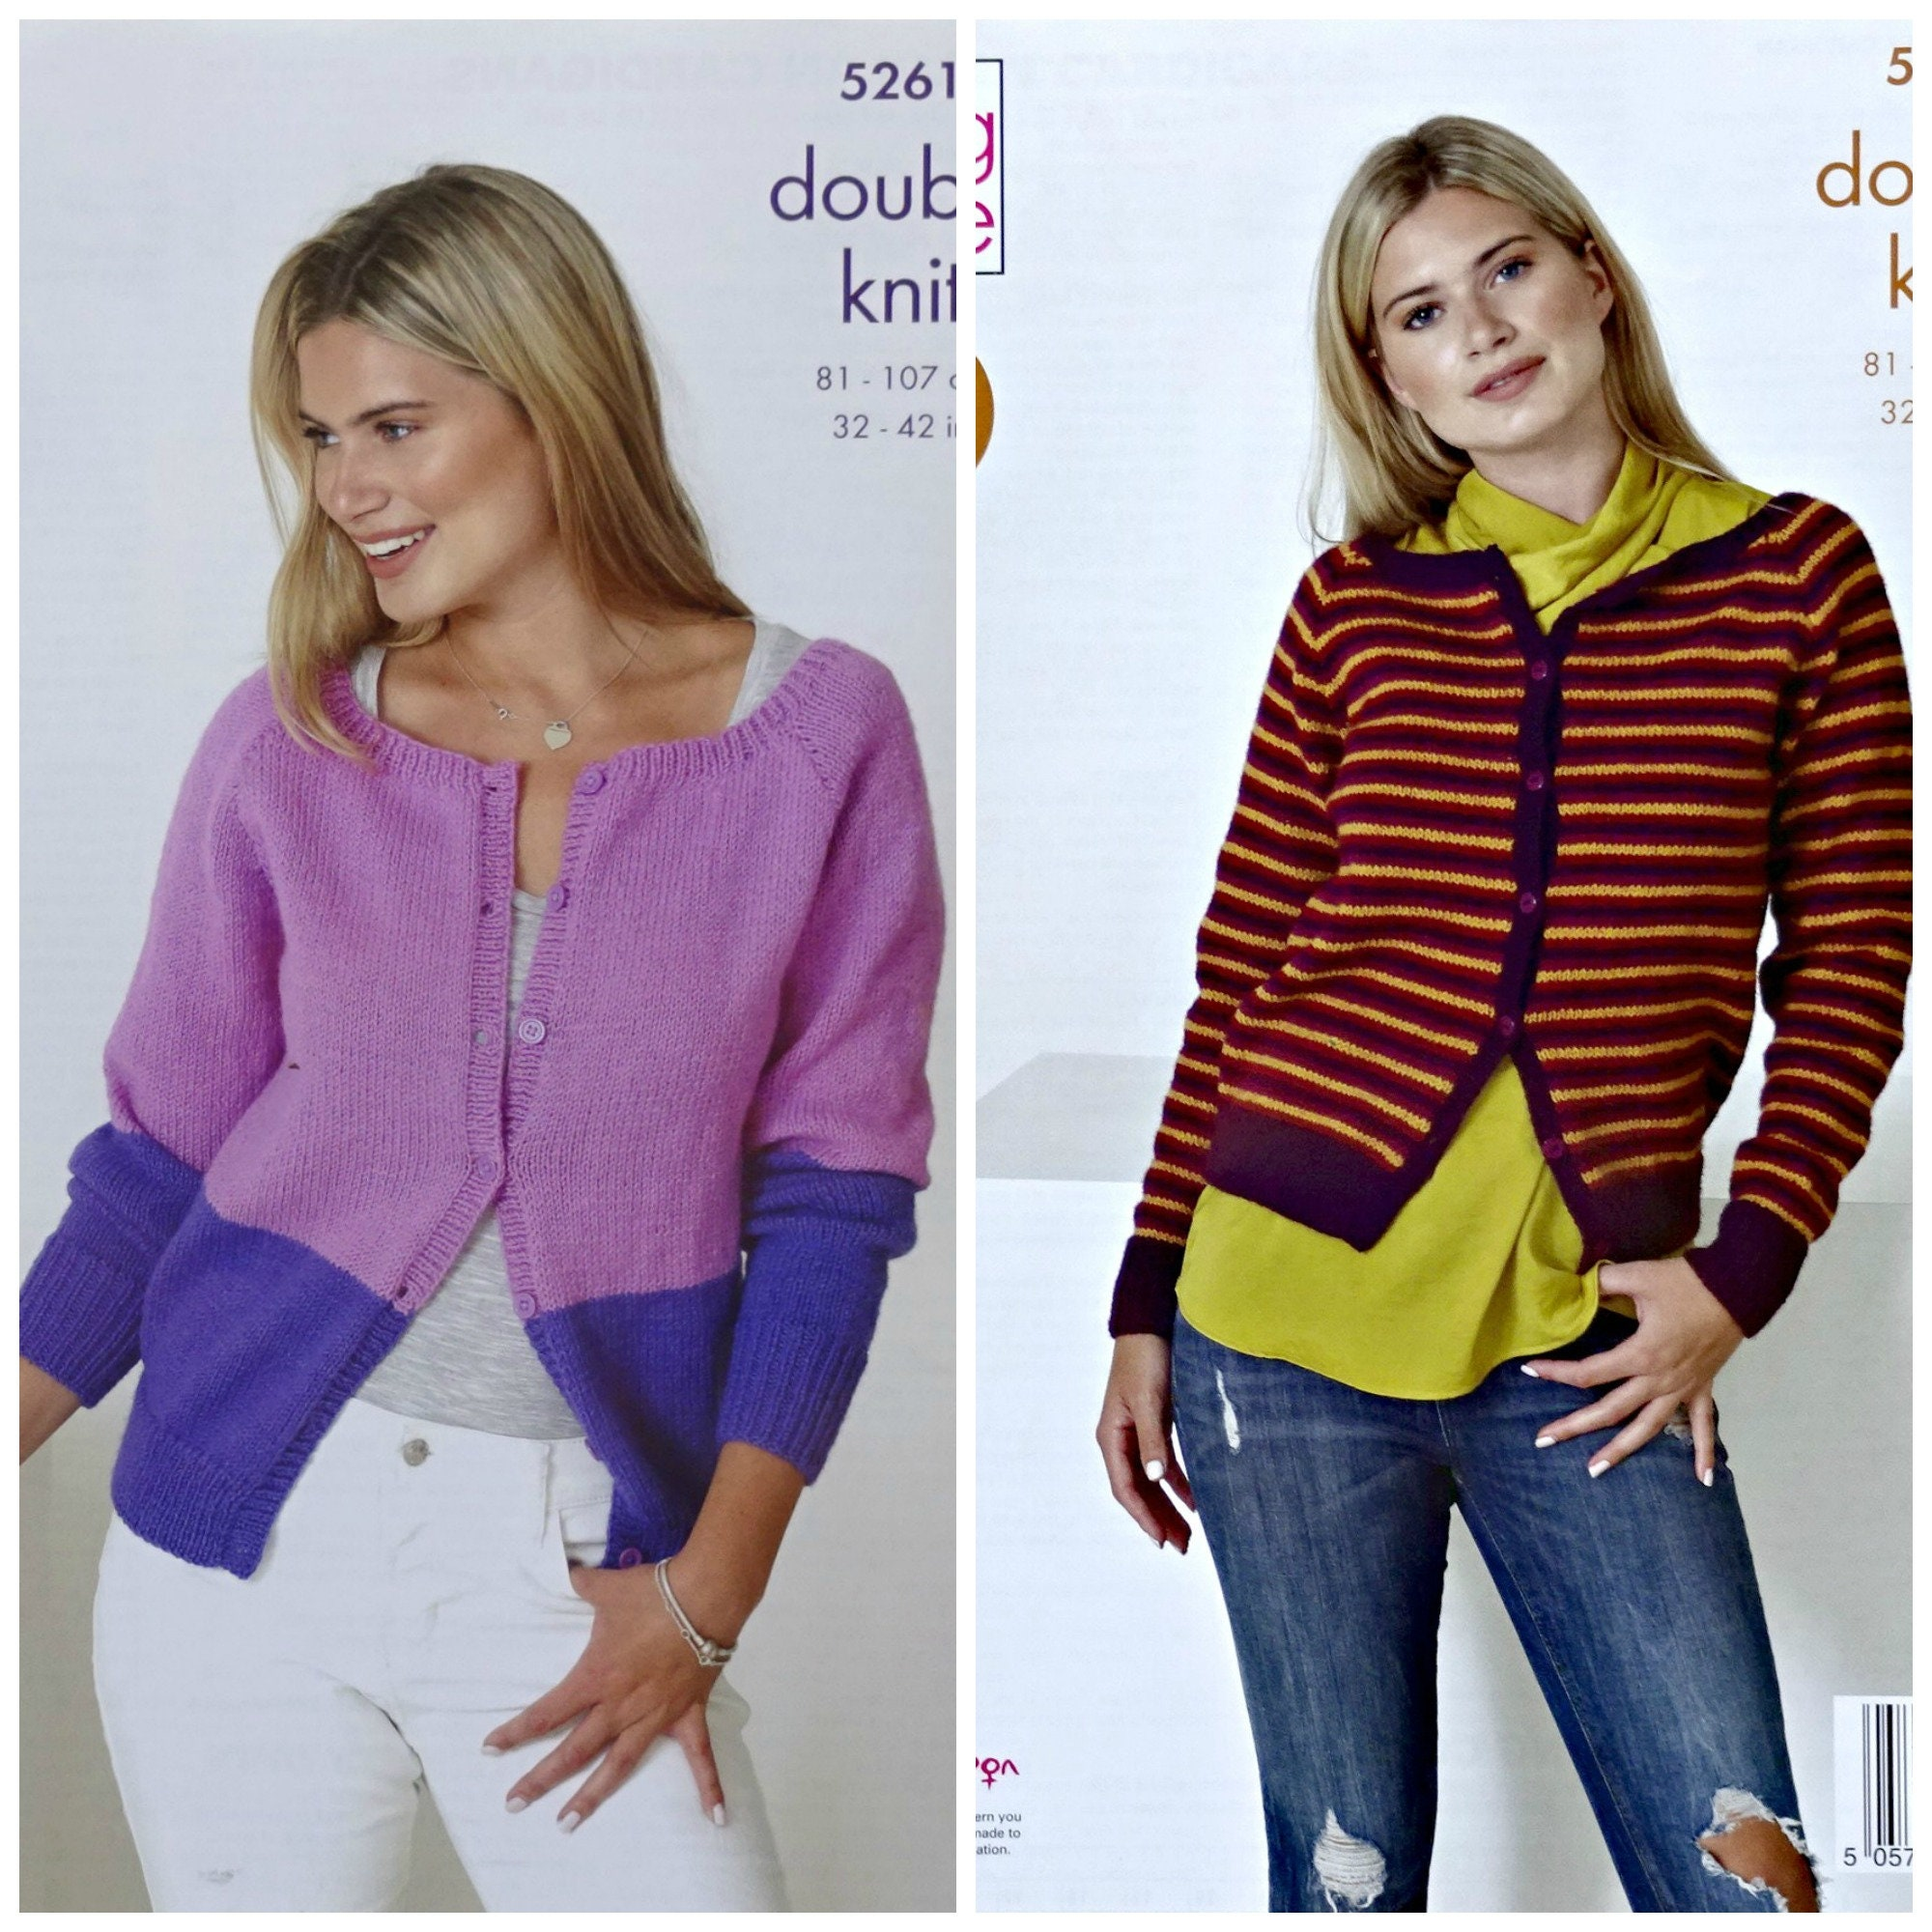 d8f5e875dd6a Womens Knitting Pattern K5261 Ladies Easy Knit Round Neck 2 ...